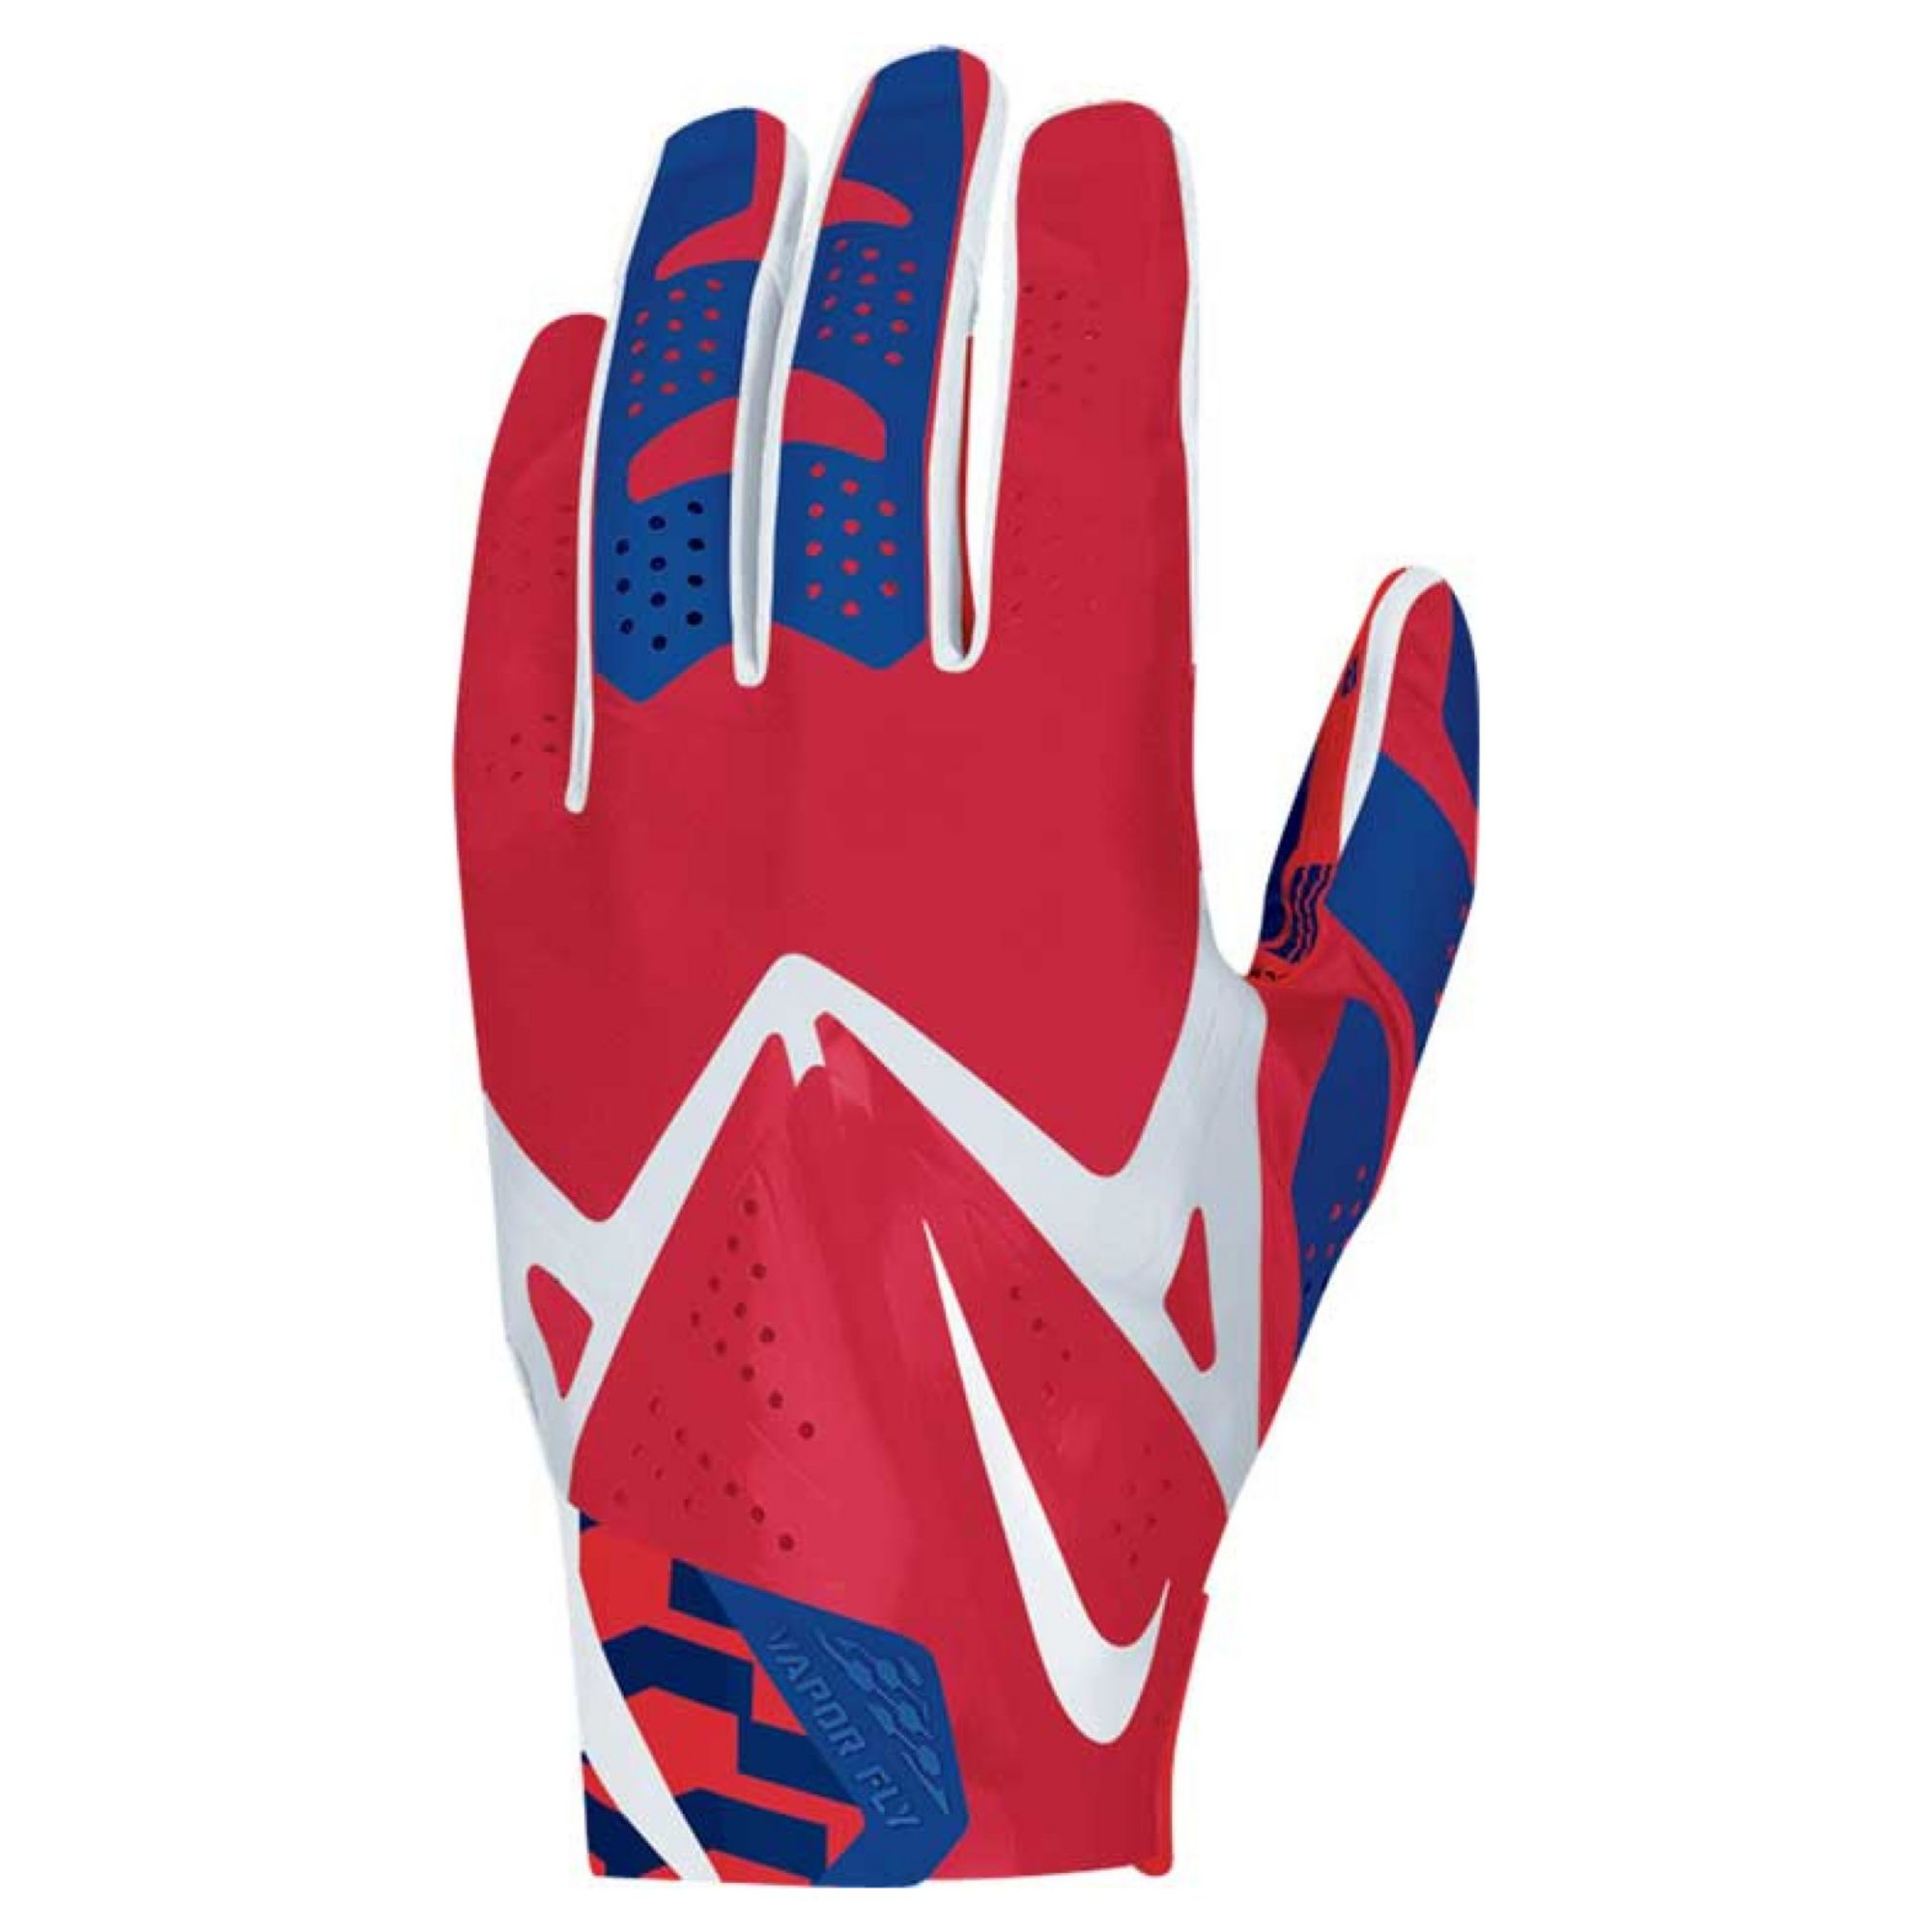 nike new york giants gloves | Dovalina Builders